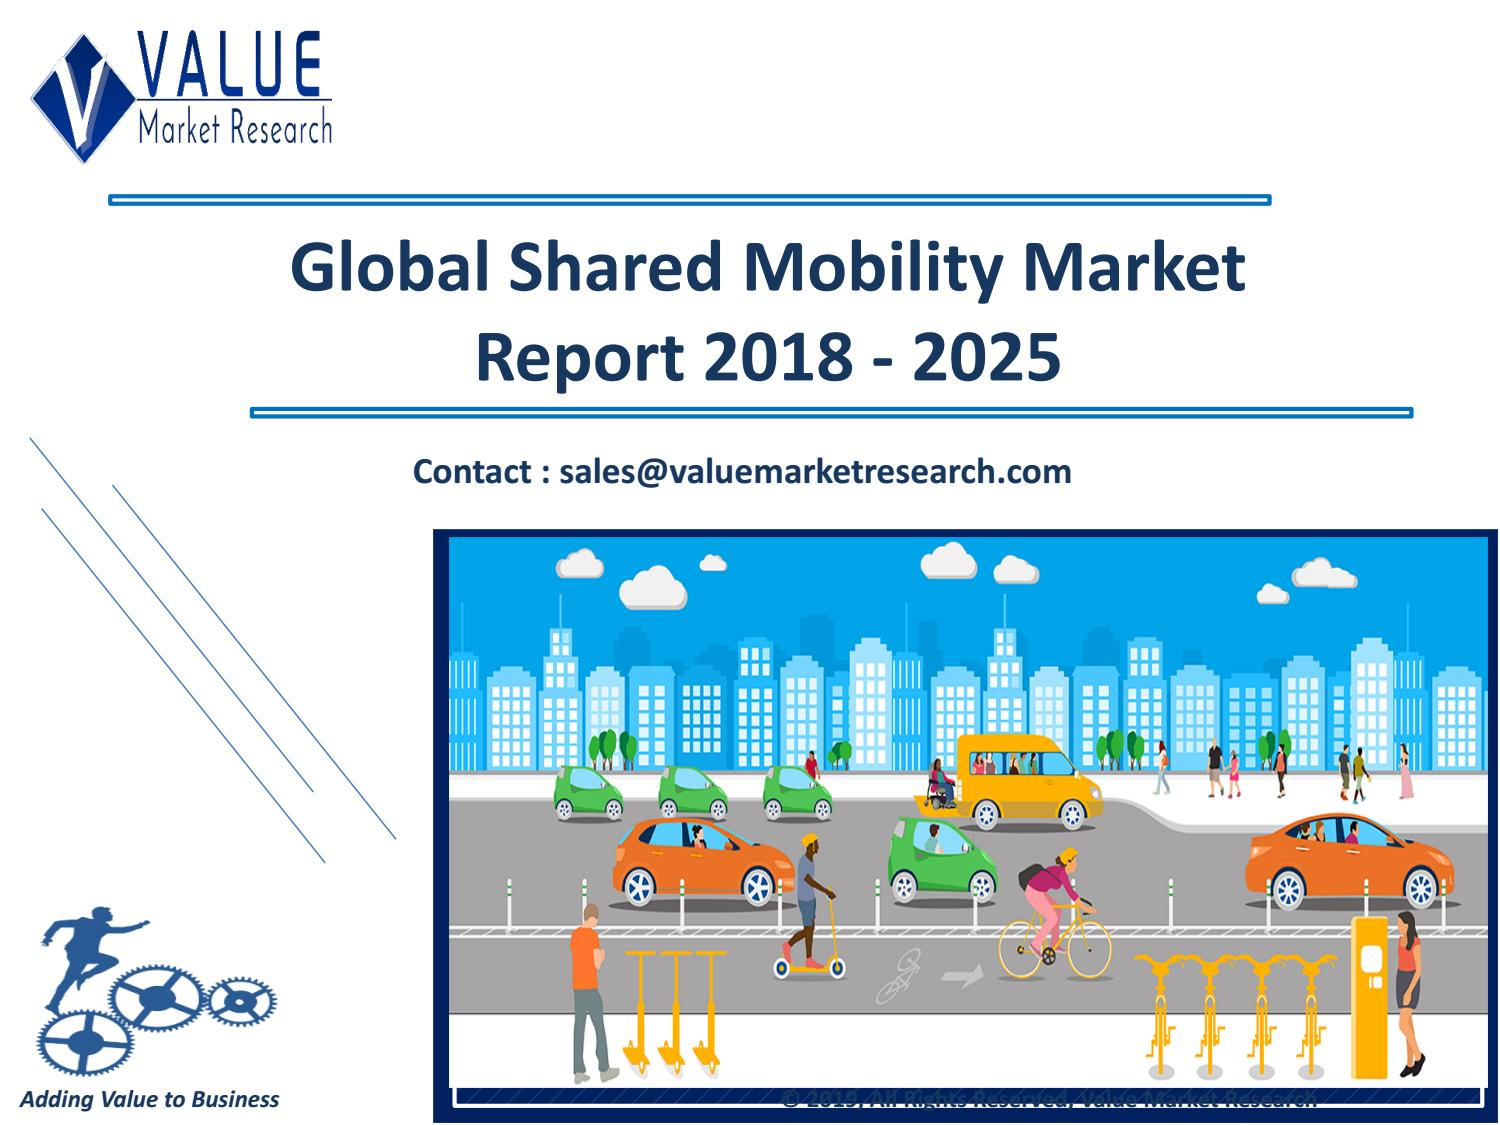 Shared Mobility Market Size & Industry Forecast Research Report